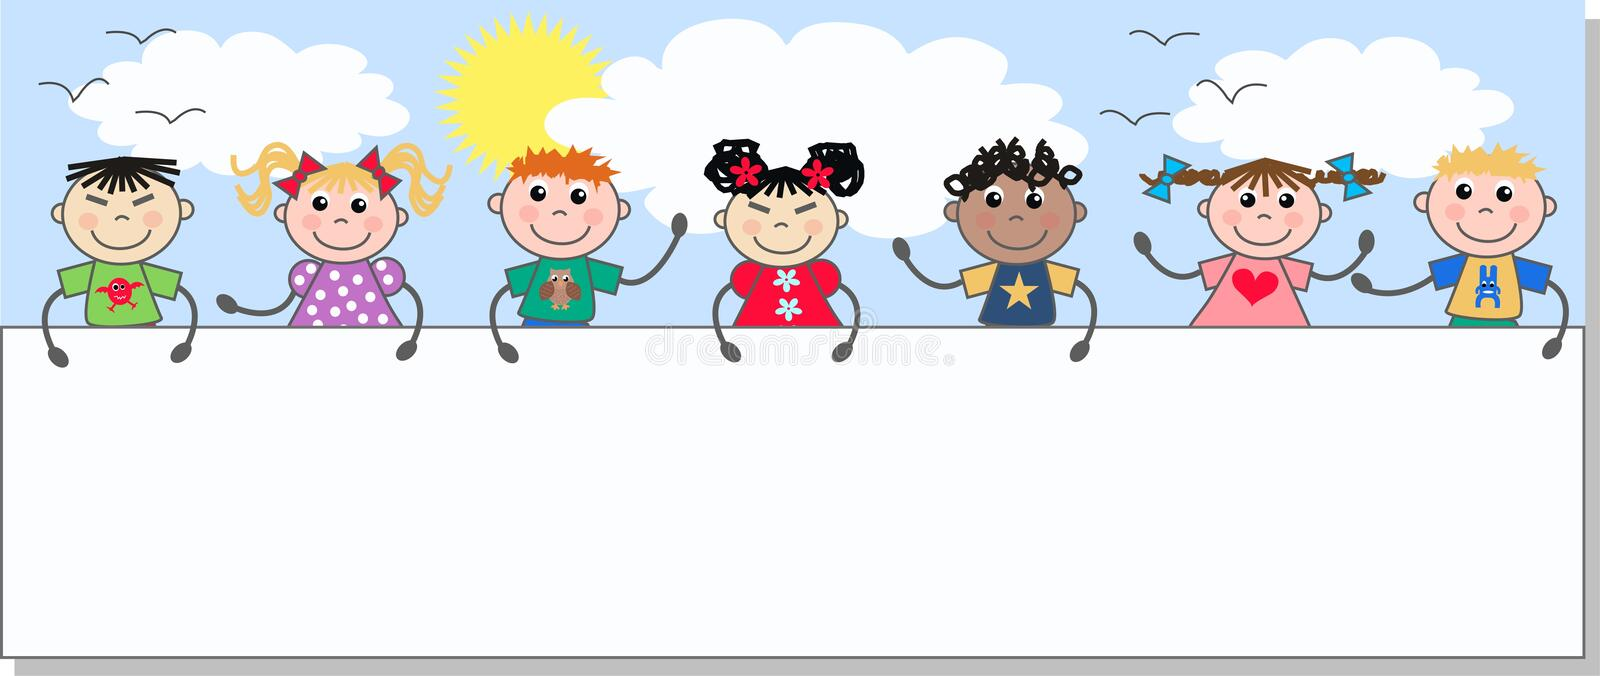 Mixed ethnic kids royalty free stock photography